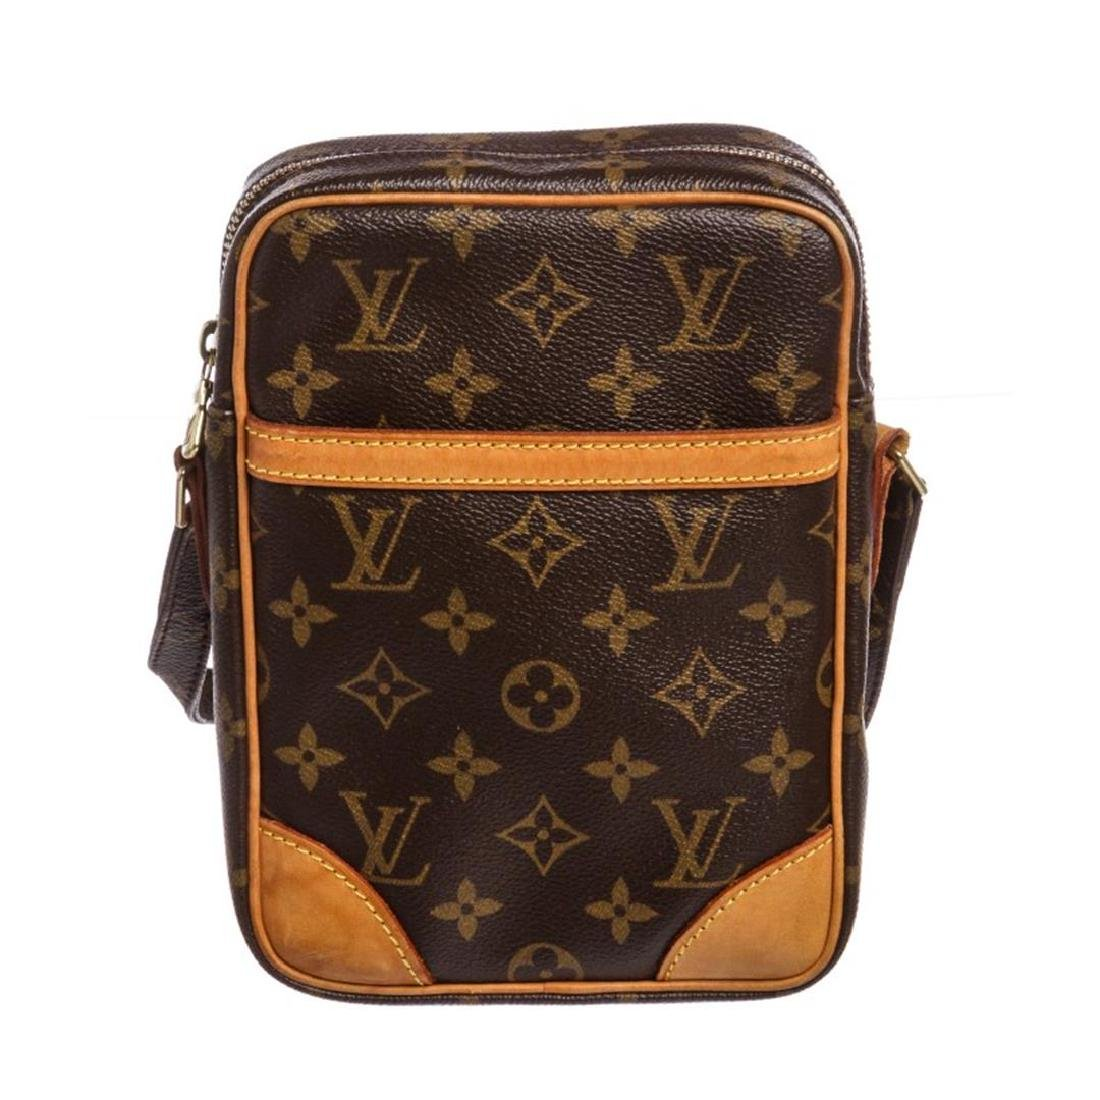 Louis Vuitton Monogram Canvas Leather Danube Crossbody